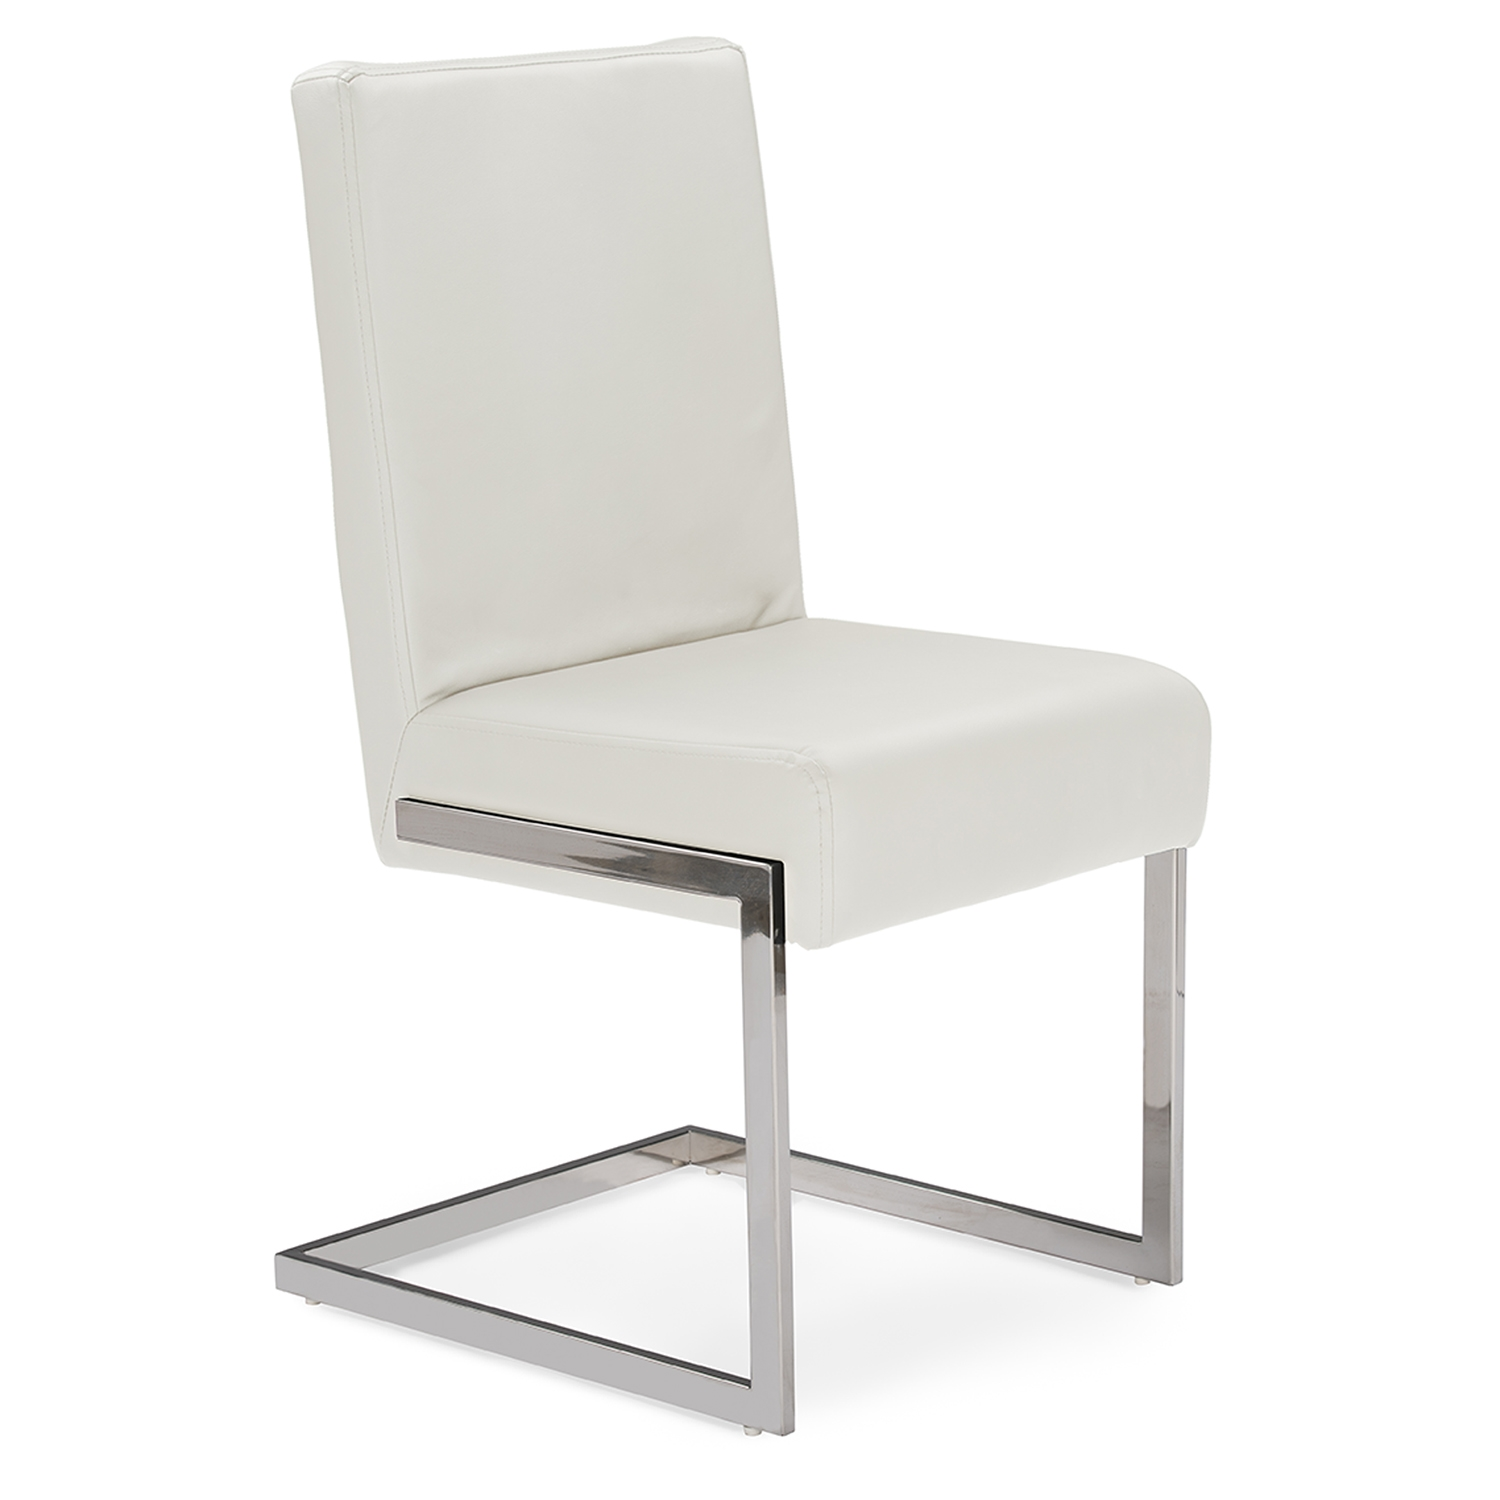 baxton studio toulan modern and white faux leather upholstered stainless steel dining chair set of 2